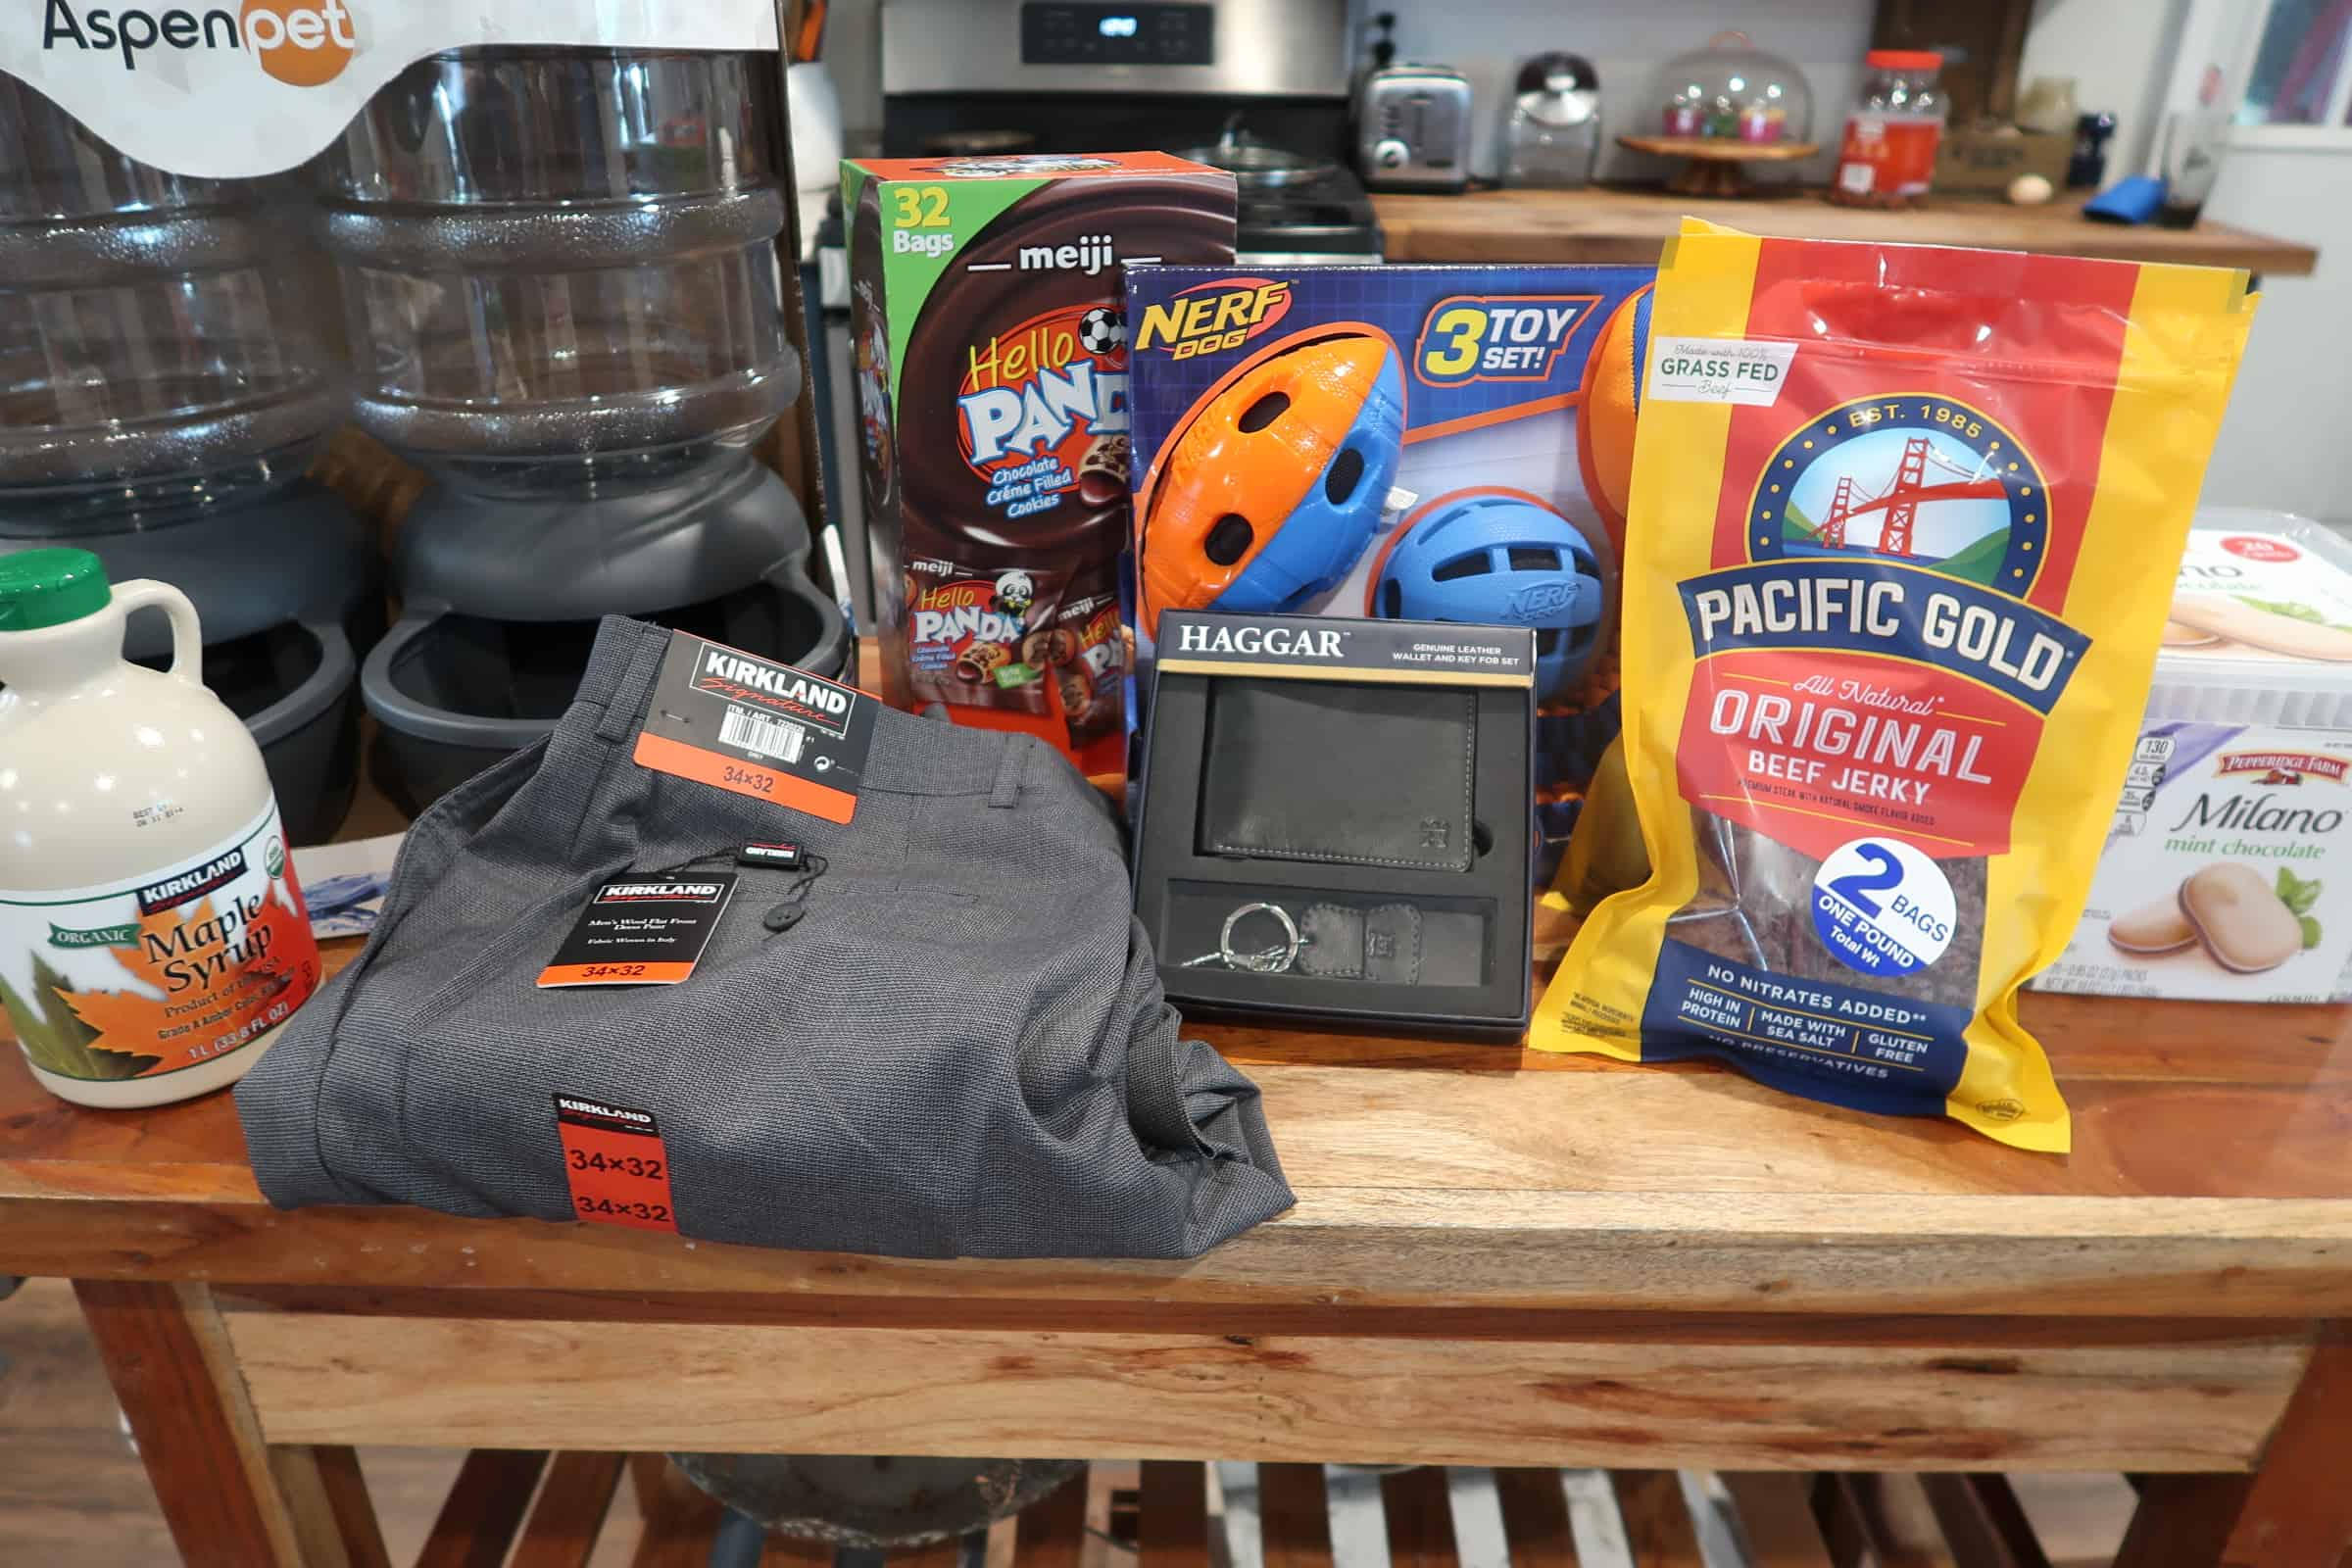 shopping haul at bjs and costco wholesale club